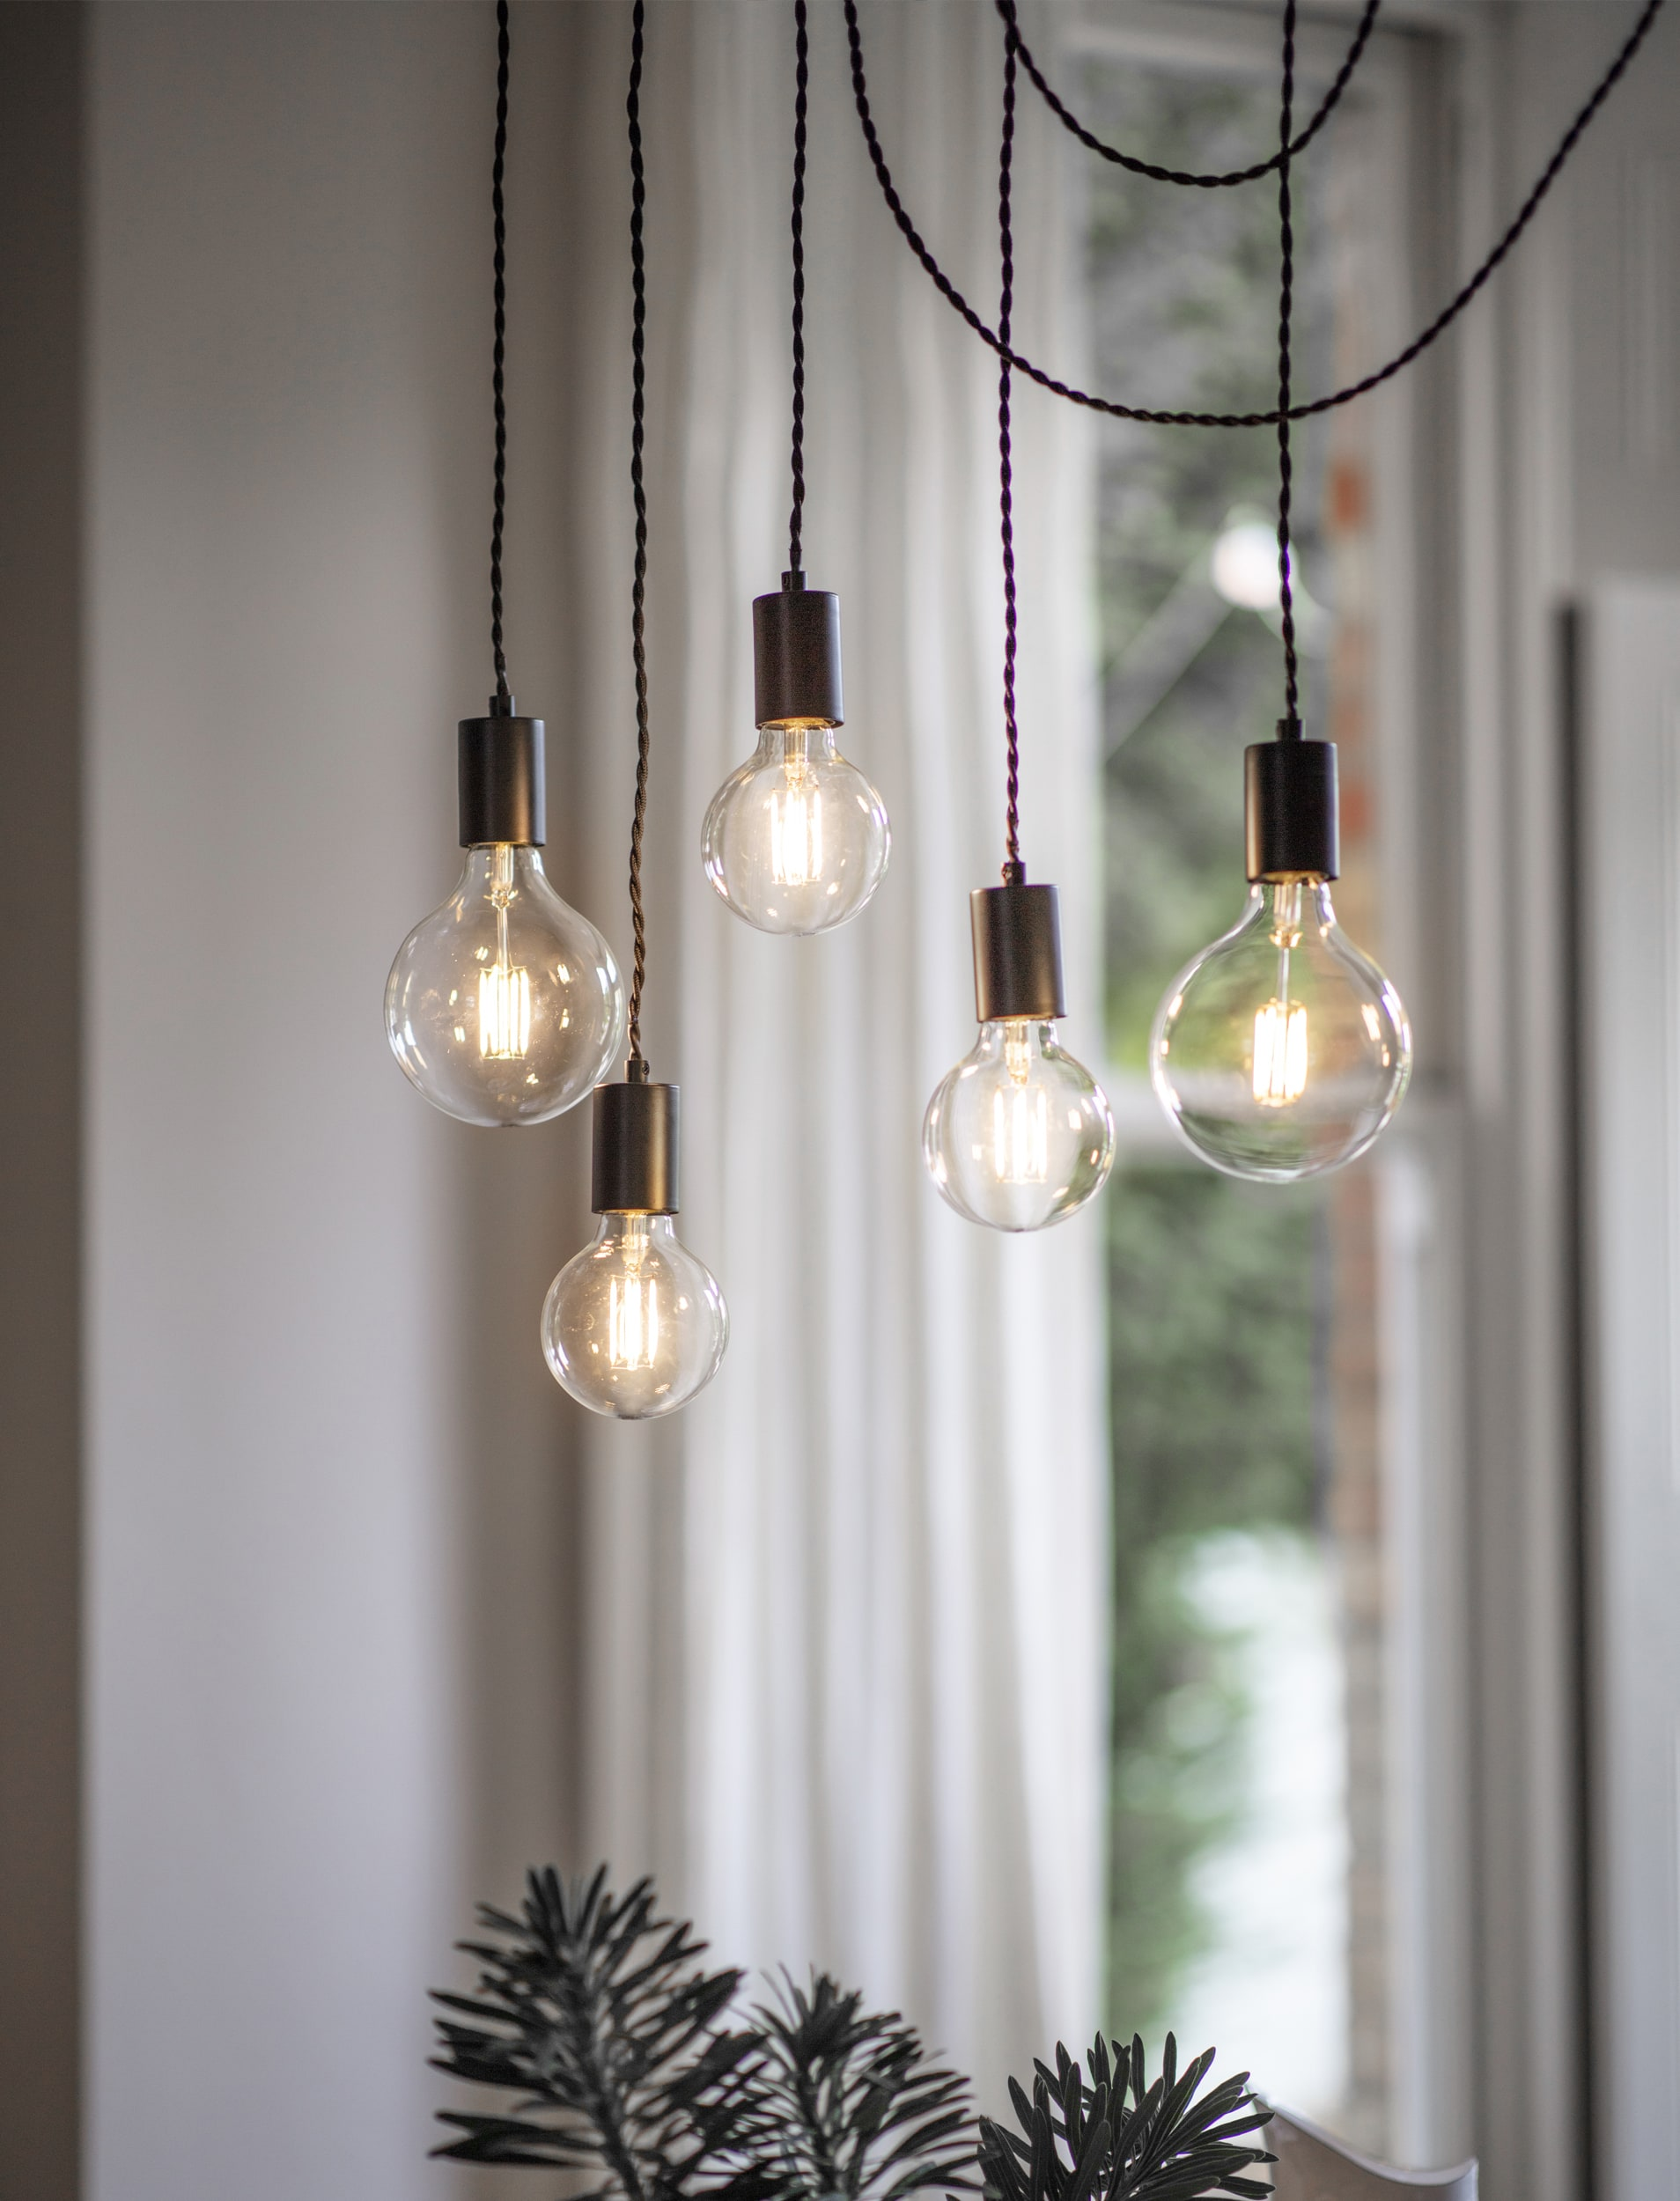 Soho 5 Light Pendant in Black - Steel | Garden Trading